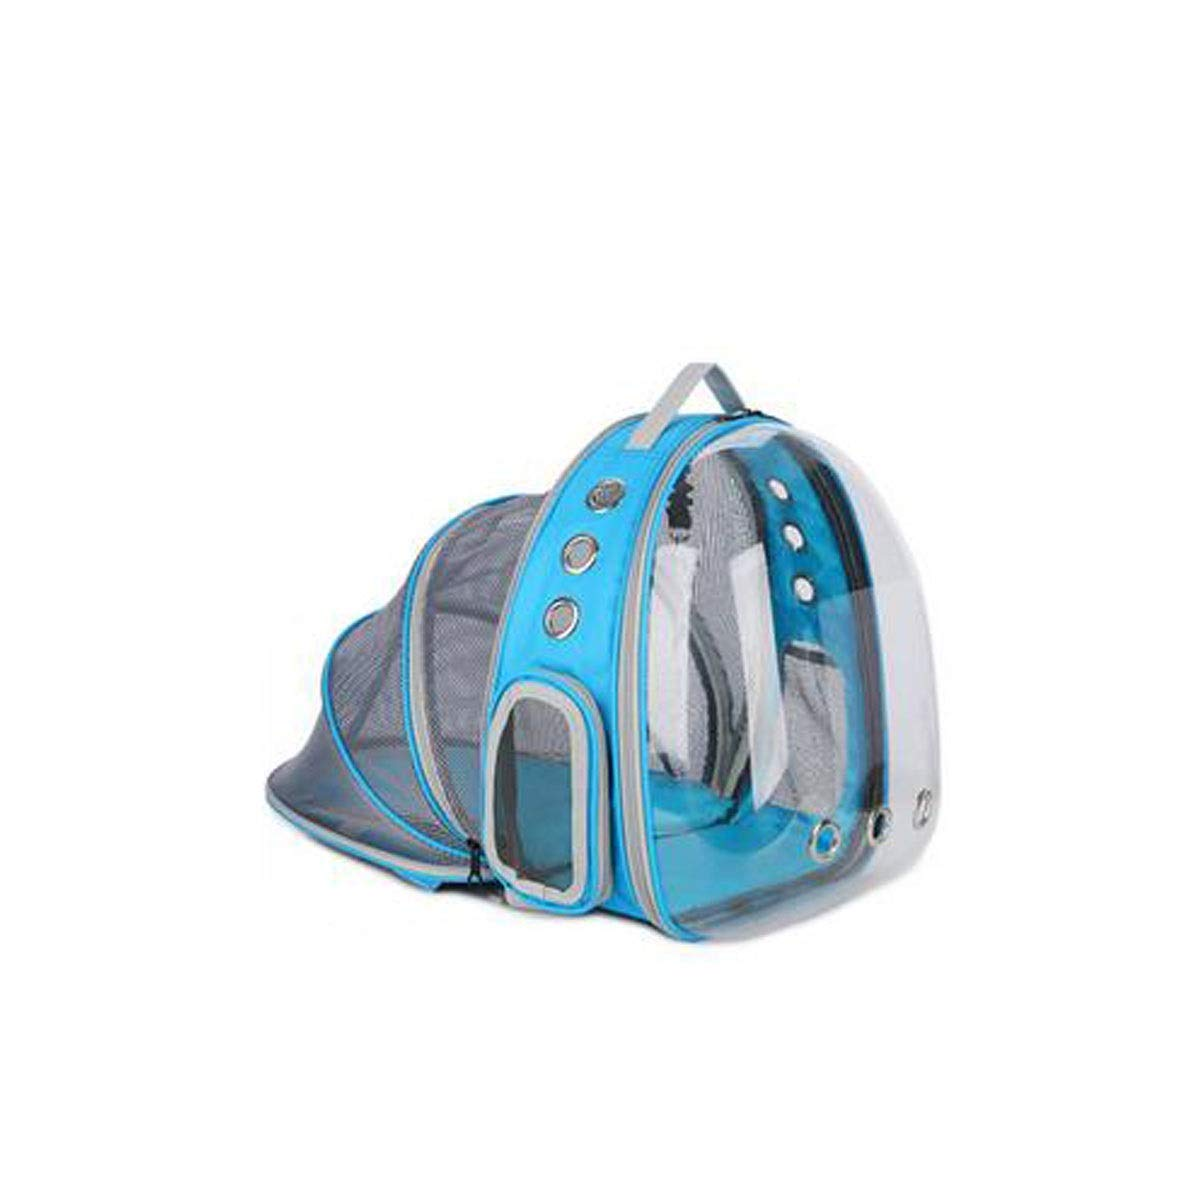 bluee Guyuexuan Expandable pet capsule transparent backpack, waterproof backpack, portable bubble backpack airline approved(Black, bluee, Pink, Red) Pet Travel Essentials (color   bluee)